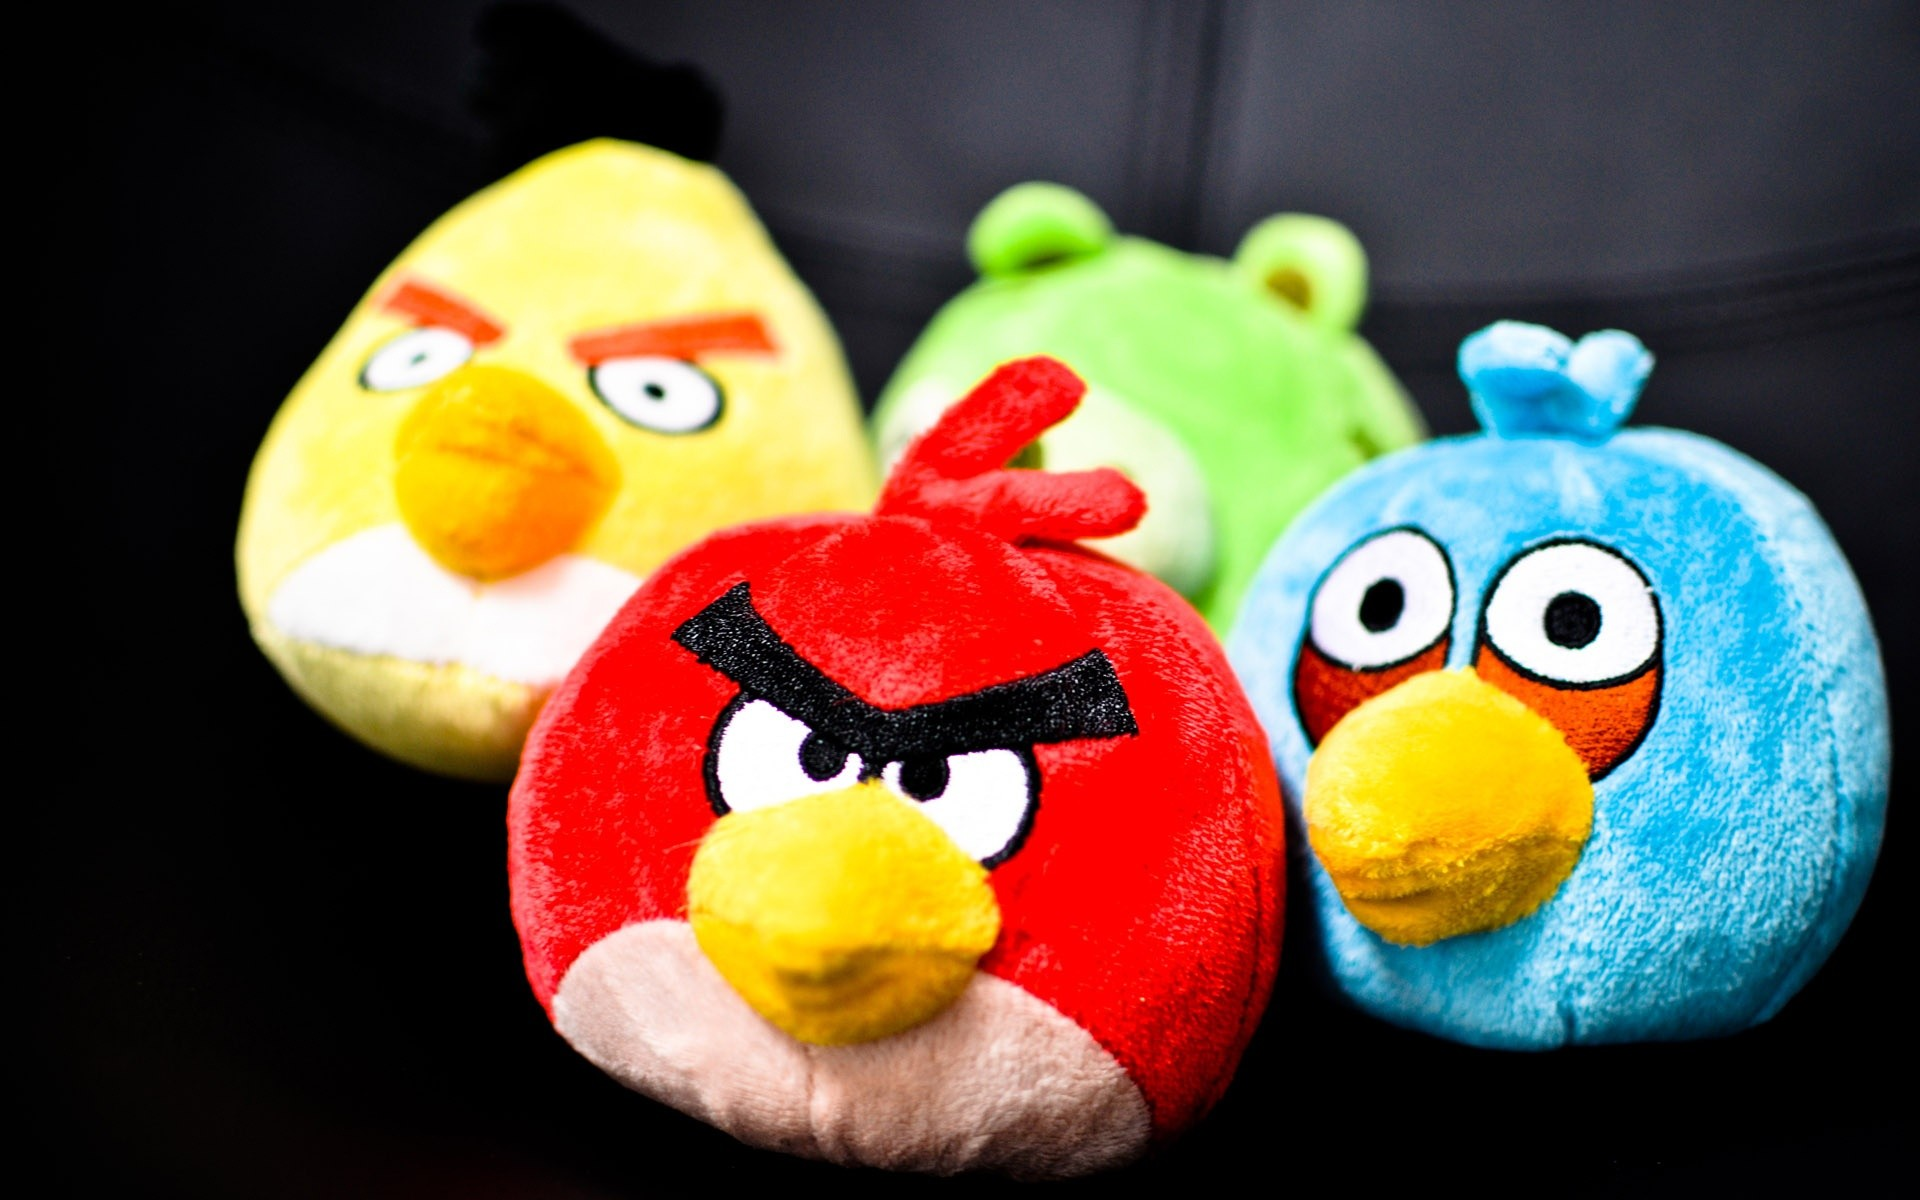 Peluches de Angry Birds - 1920x1200